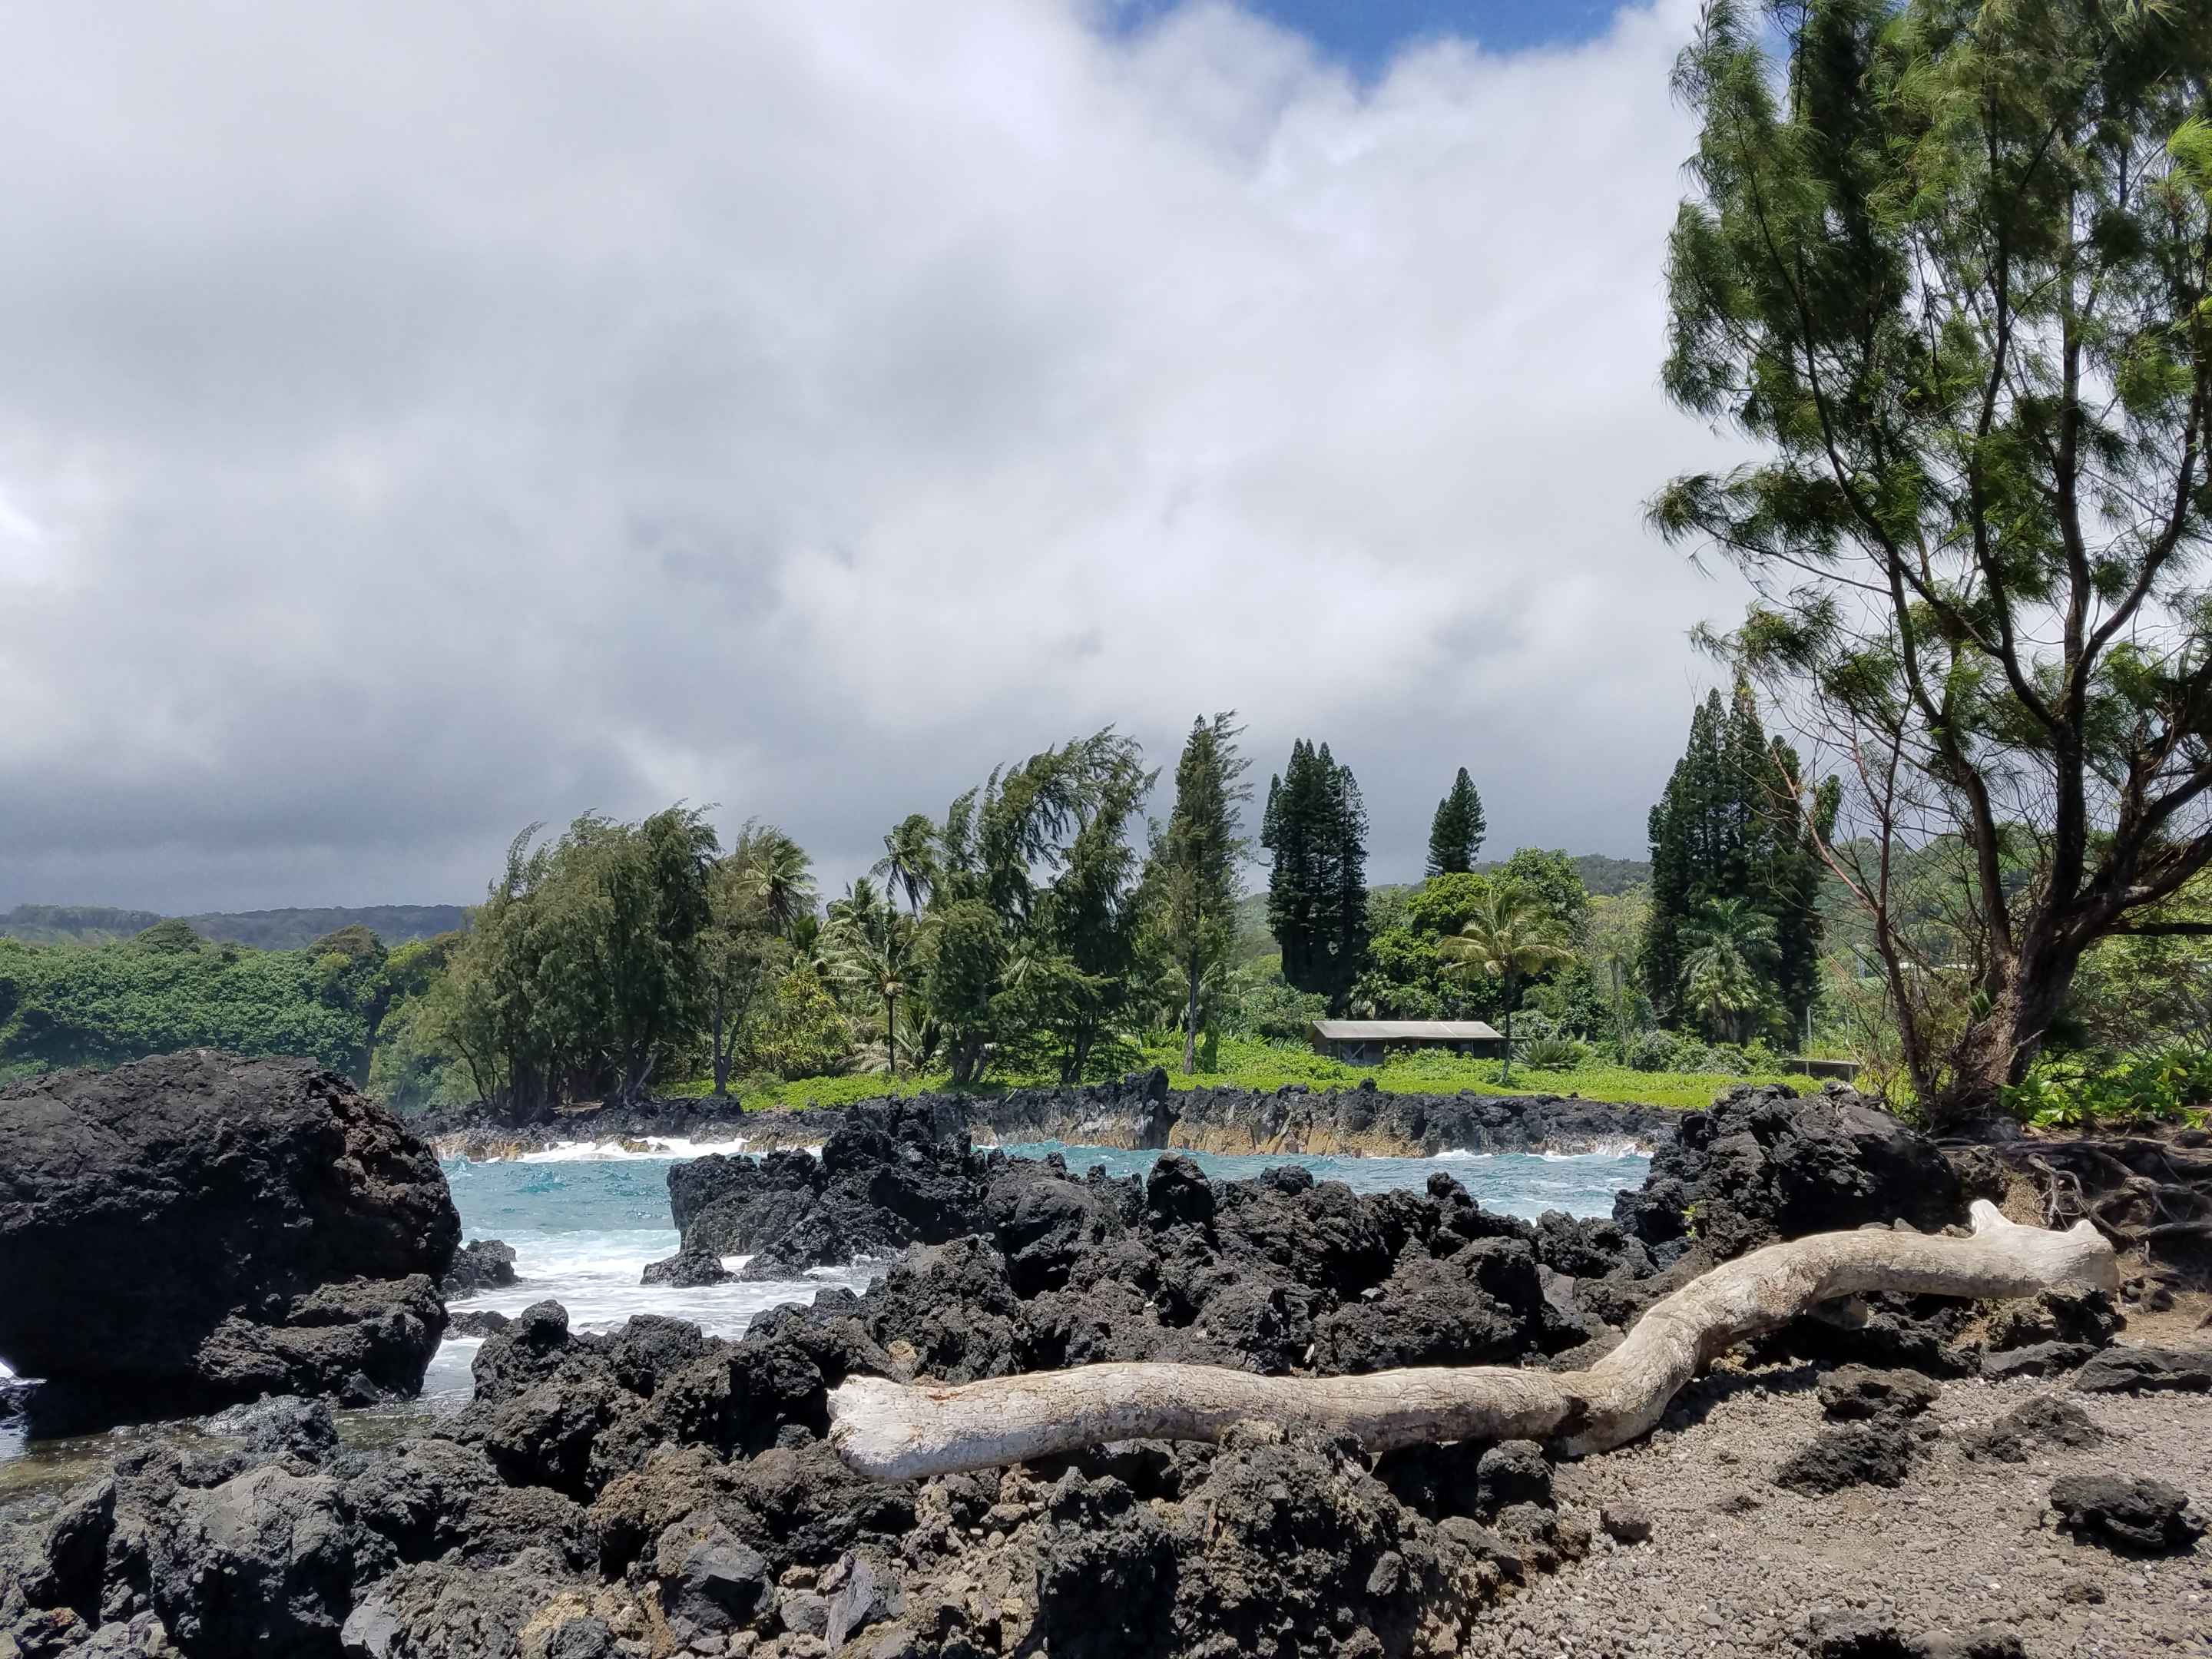 Beautiful Keanae Peninsula on the island of Maui Hawaii.